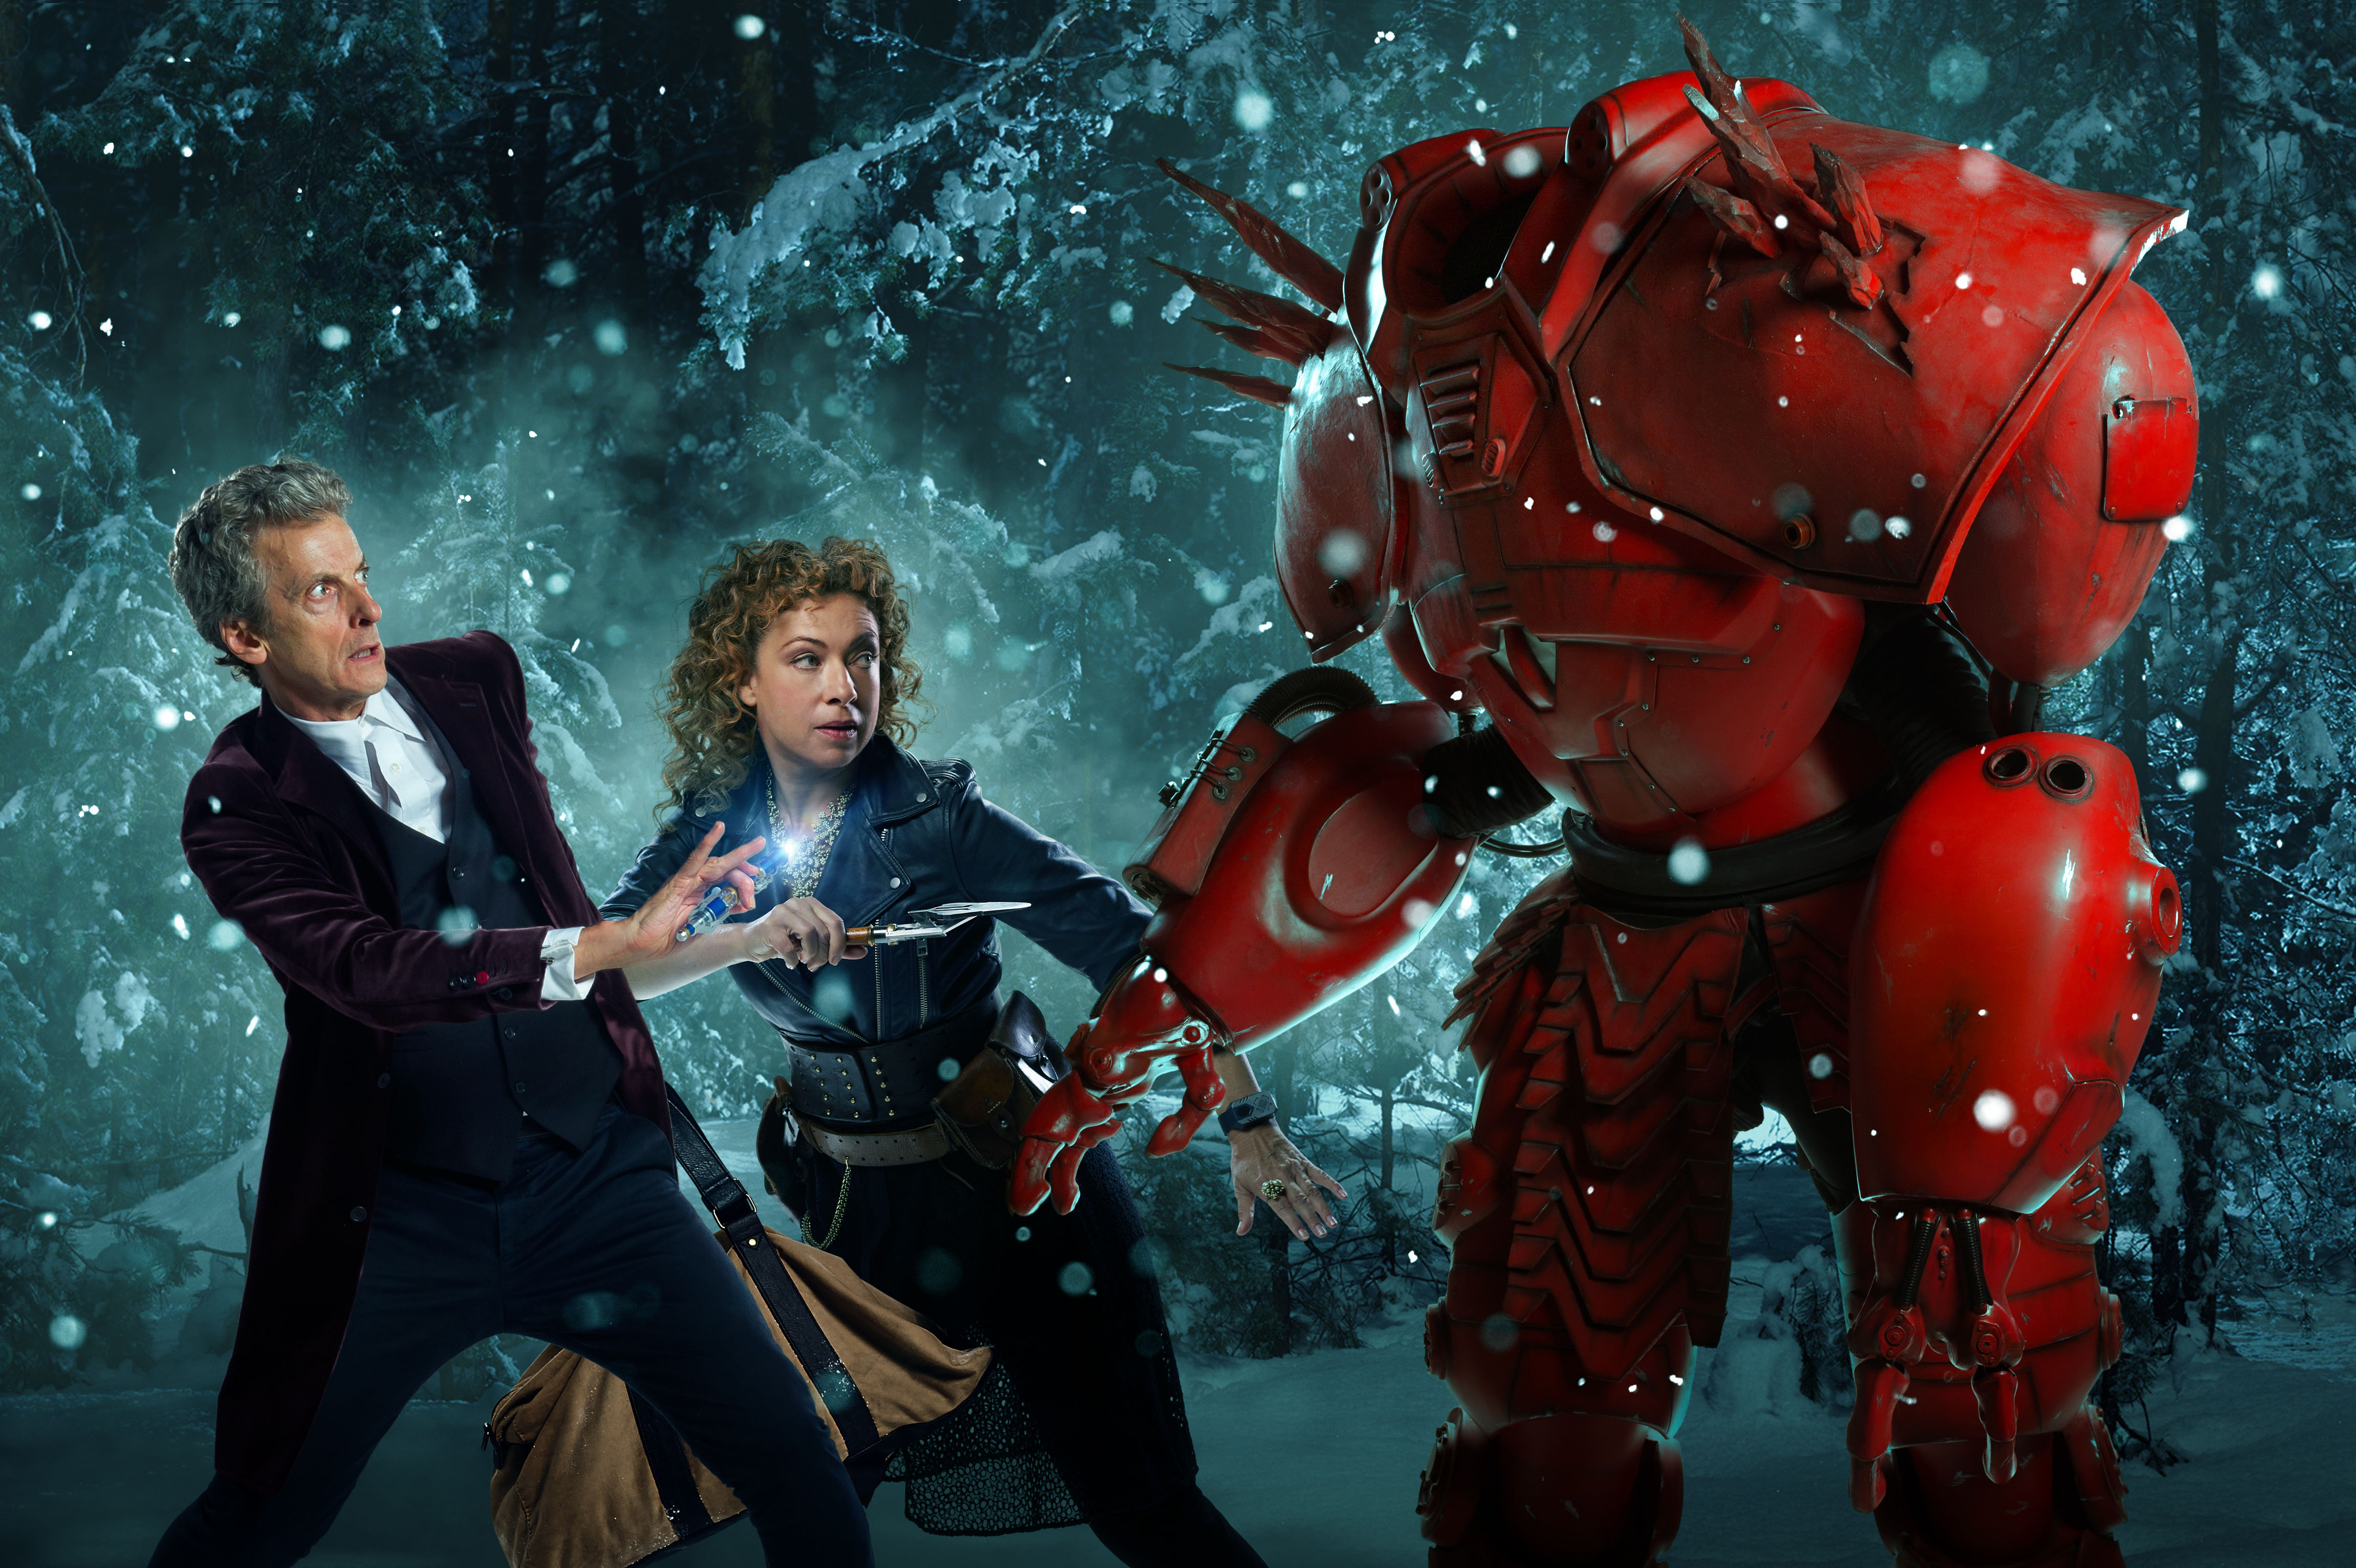 Doctor Who Christmas special: New picture released plus an intriguing title